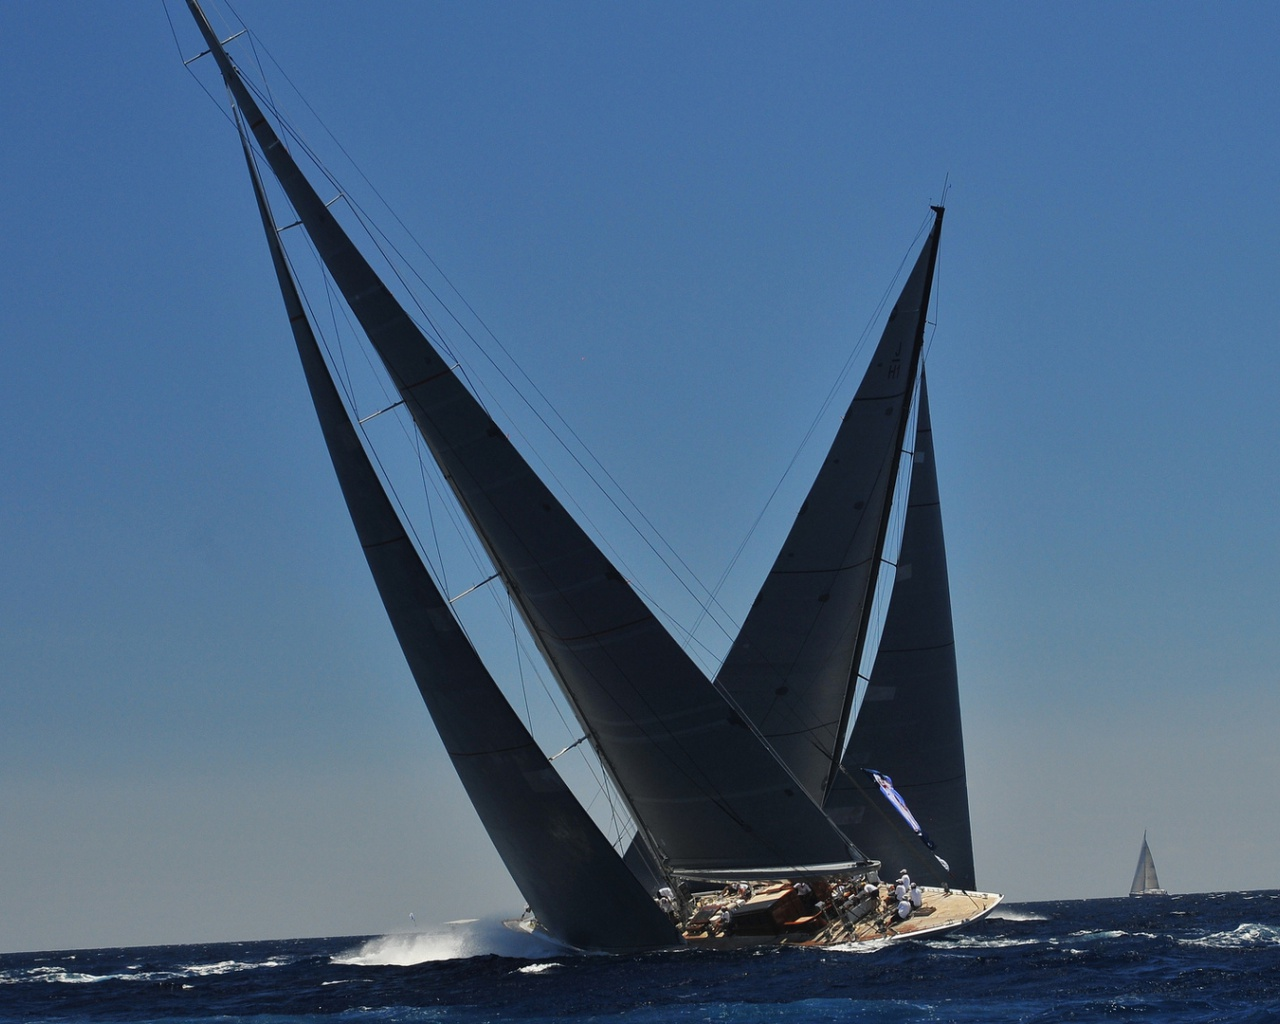 1280x1024 Sailing Yacht desktop PC and Mac wallpaper